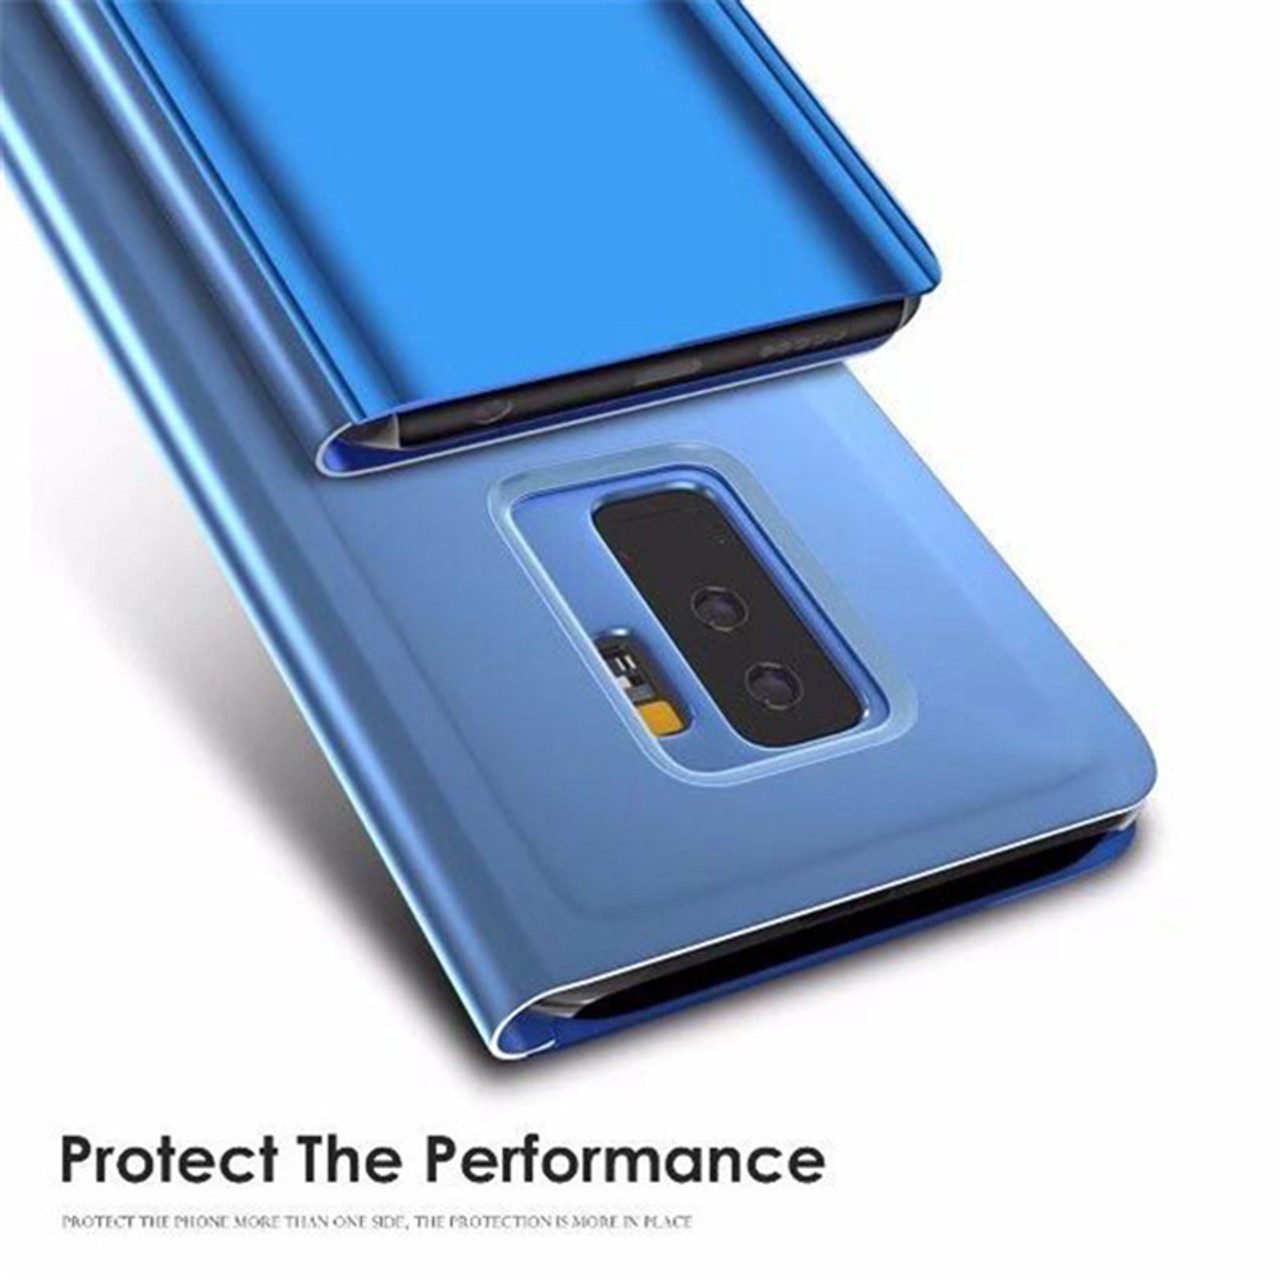 timeless design d18c0 70ca4 Mirror Flip Case For Samsung Galaxy A6 A5 A8 2018 J6 J2 J5 J7 Clear View  Window Smart Cover For Galaxy S8 S9 Plus S7 Edge Note 8